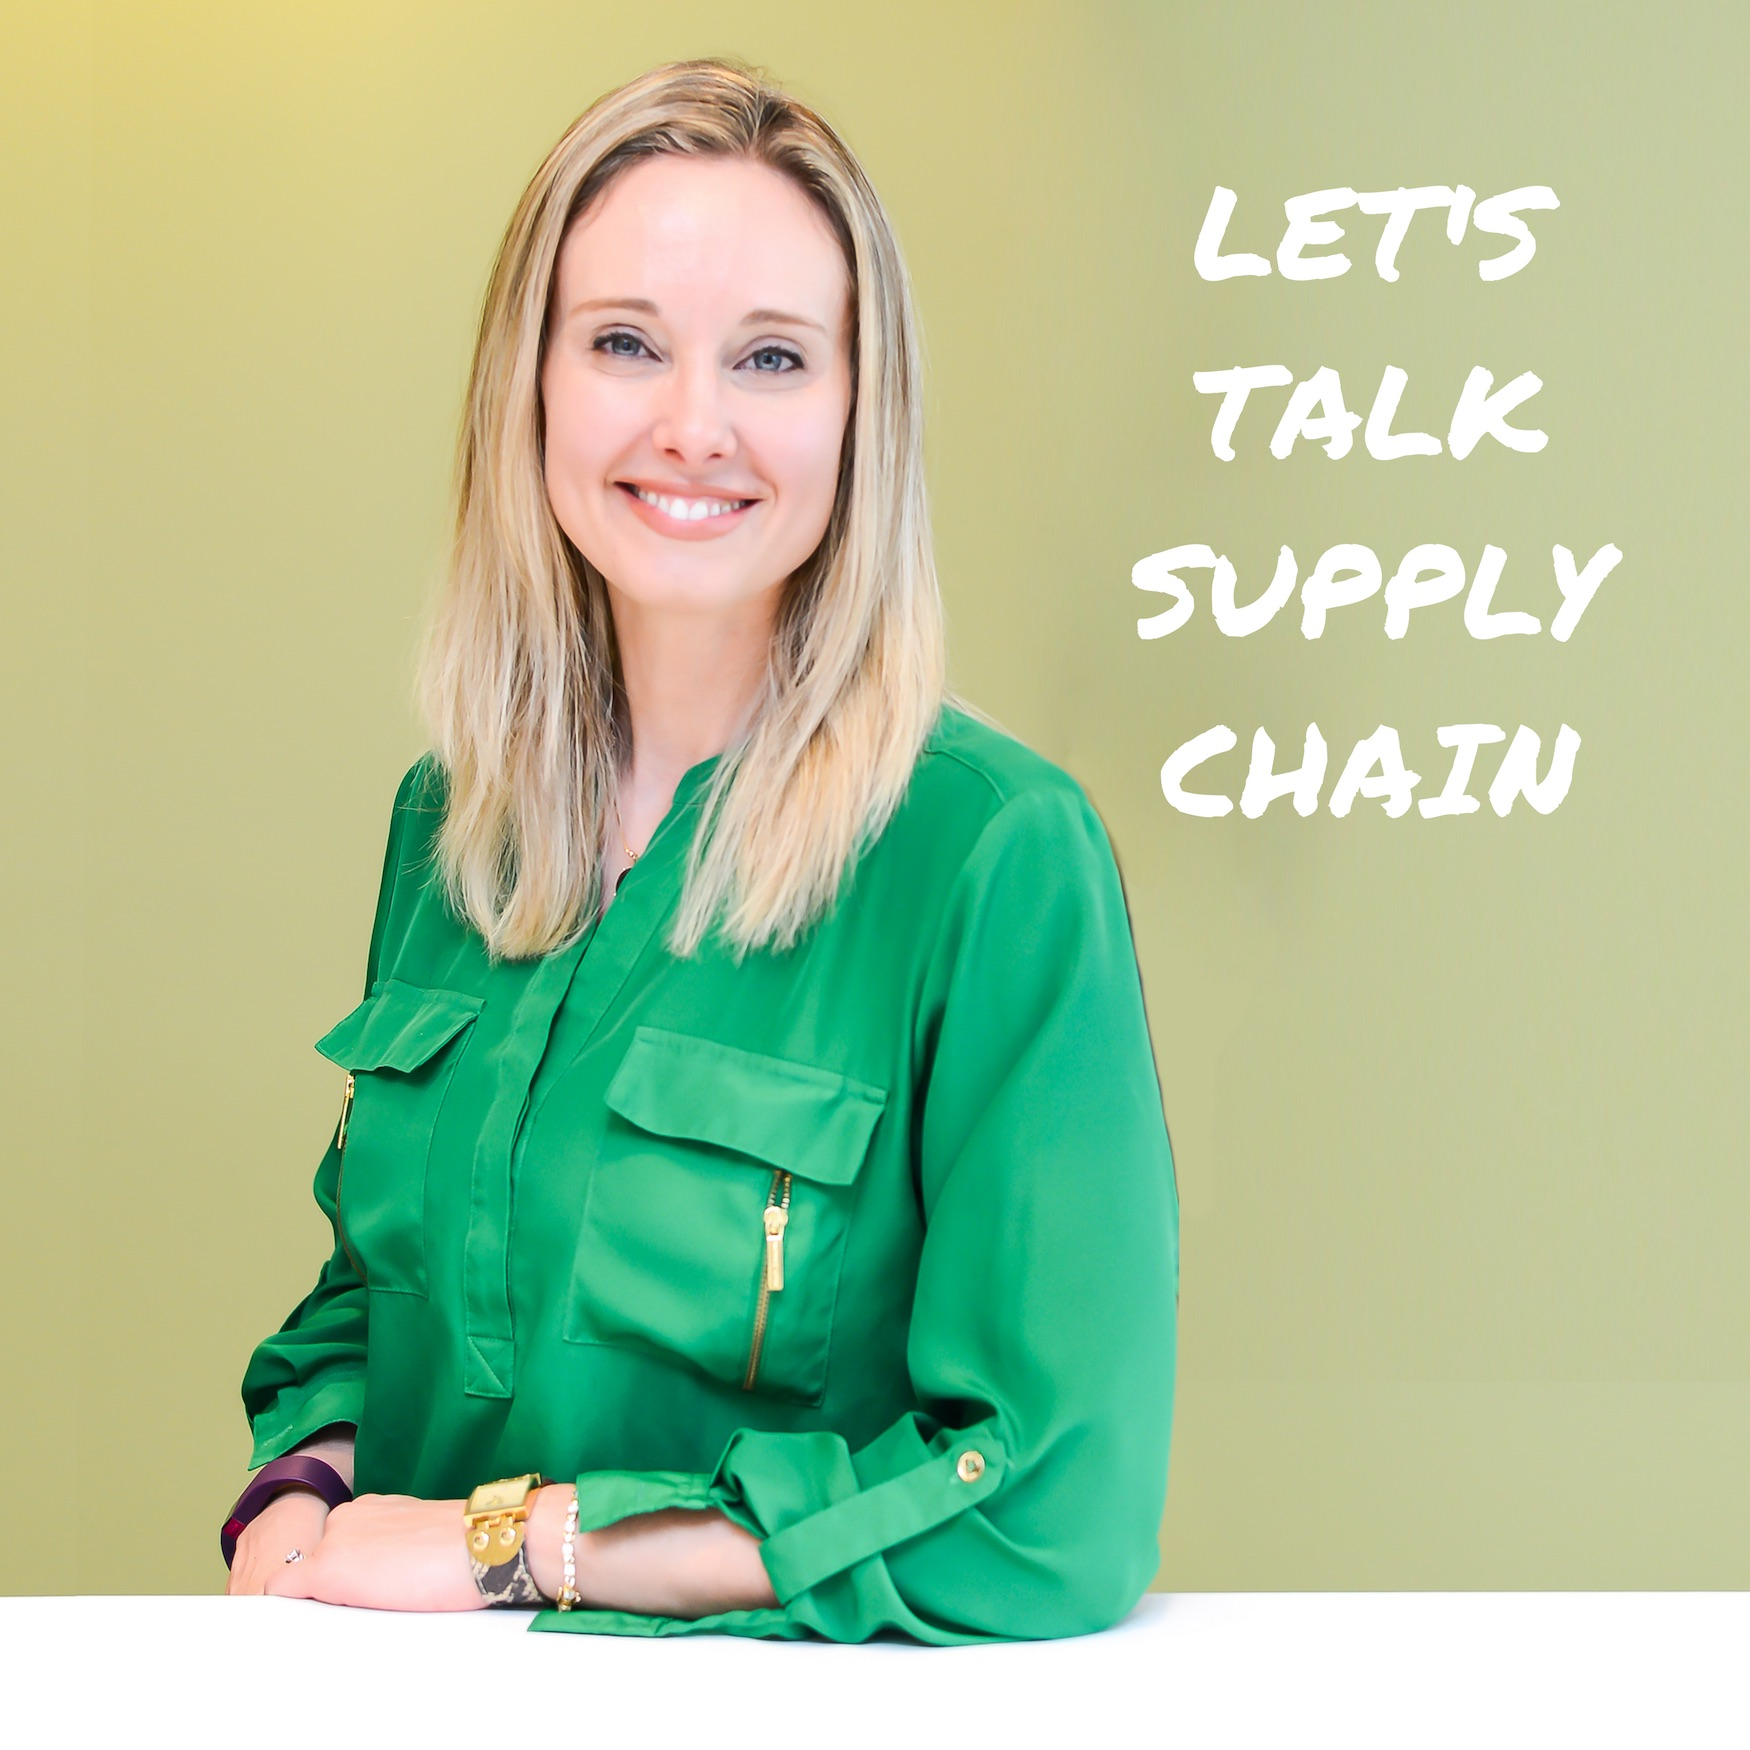 Sarah Barnes-Humphrey, CEO, Shipz.com and Host, Let's Talk Supply Chain